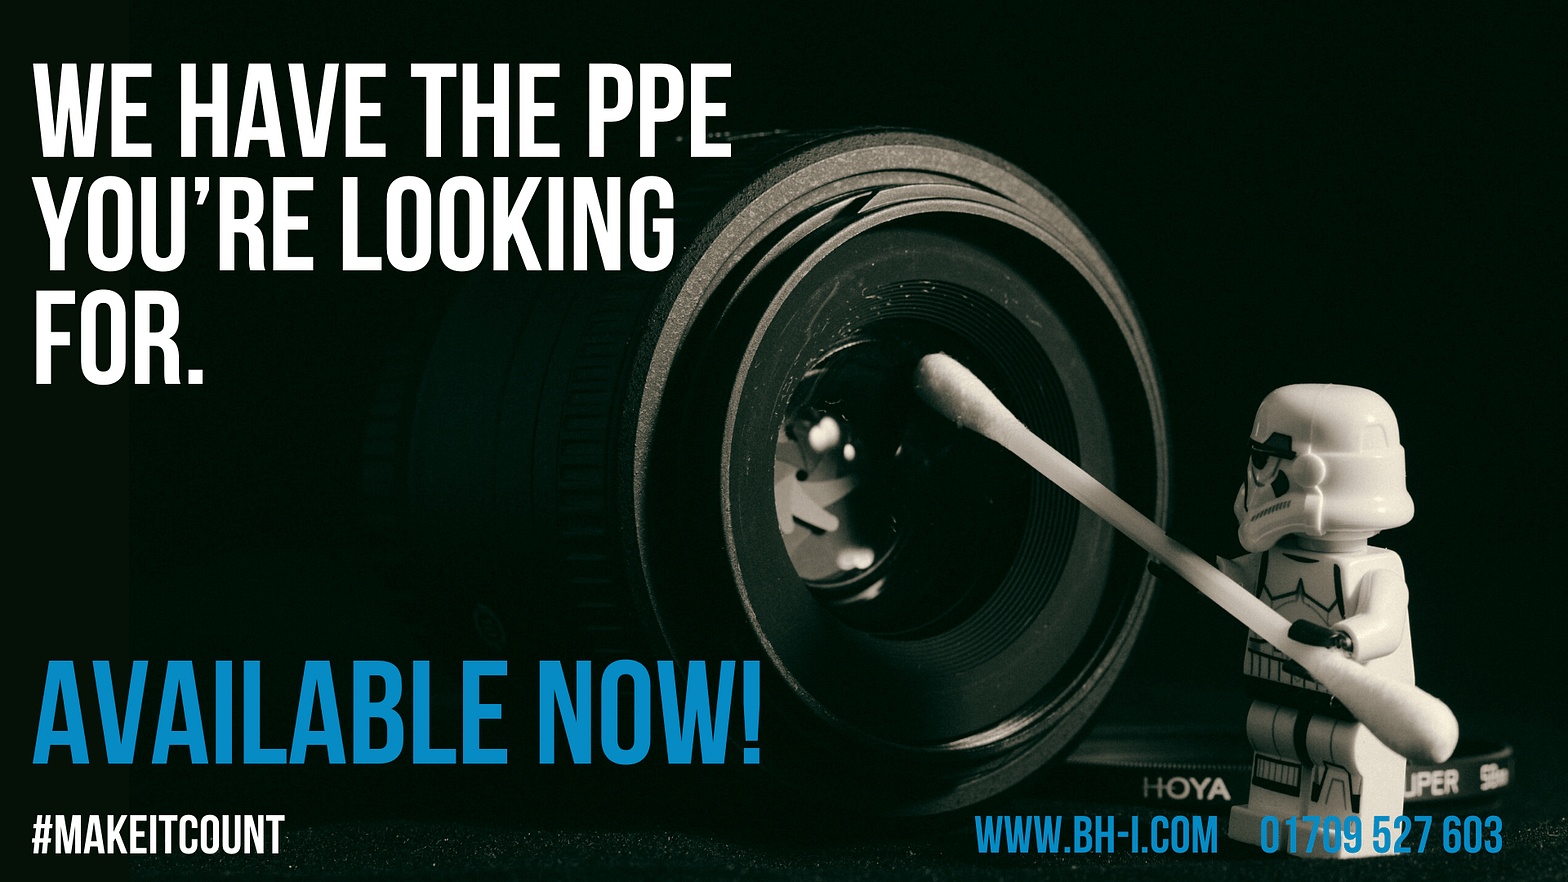 Is this the PPE you are looking for?